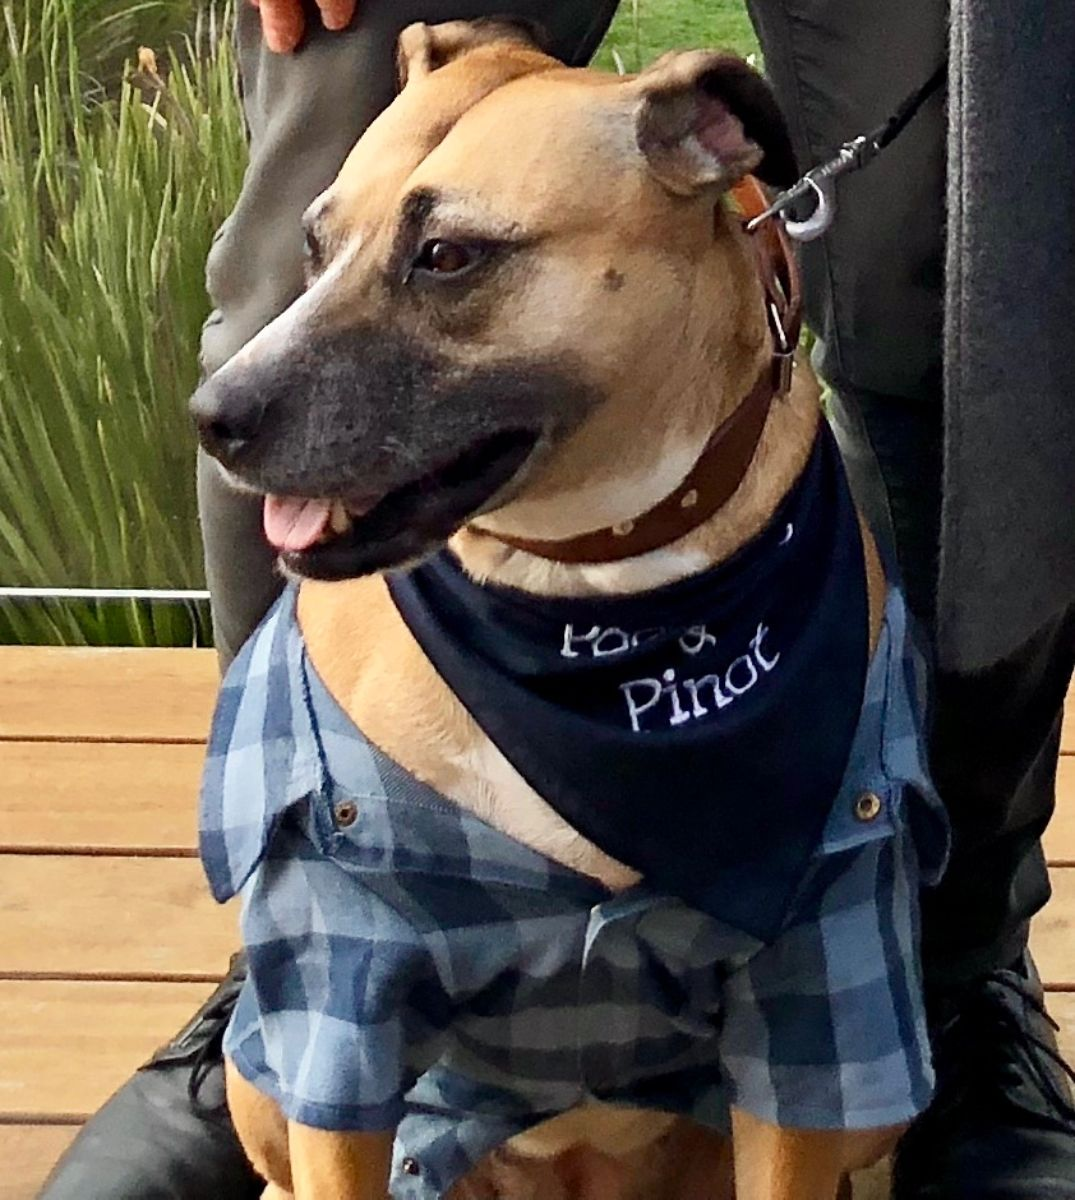 staffie on prive dog friendly wine tour with Pooches & Pinot